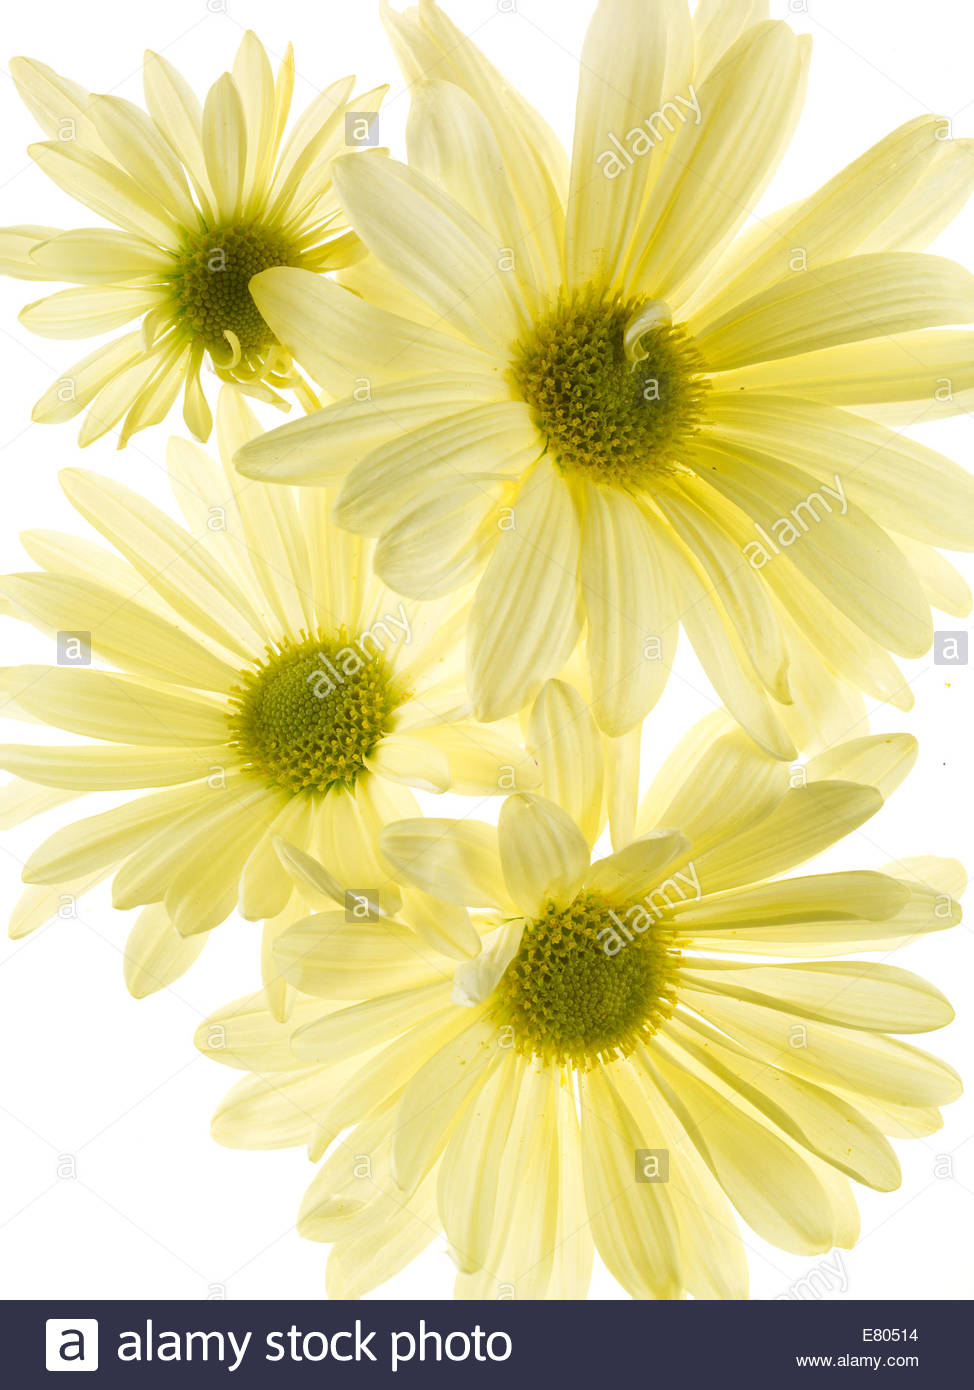 Gerbera daisy stem on white Background - Stock Image